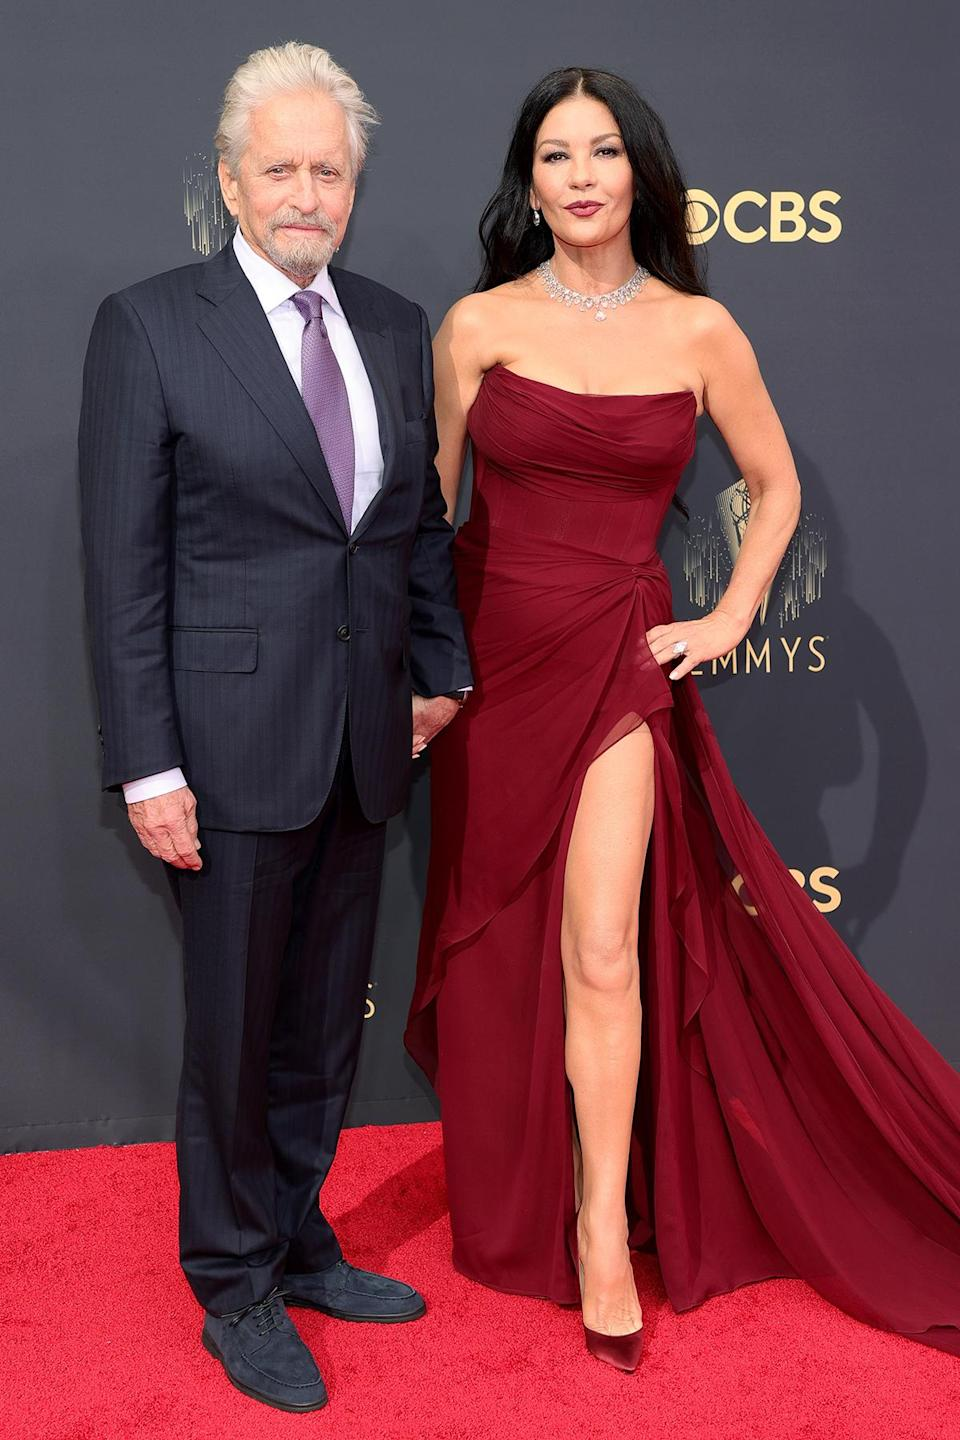 """<p>Douglas, nominated for outstanding lead actor in a comedy for <em>The Kominsky Method, </em>arrived with Zeta-Jones, who said she is a """"very proud wife.""""</p>"""